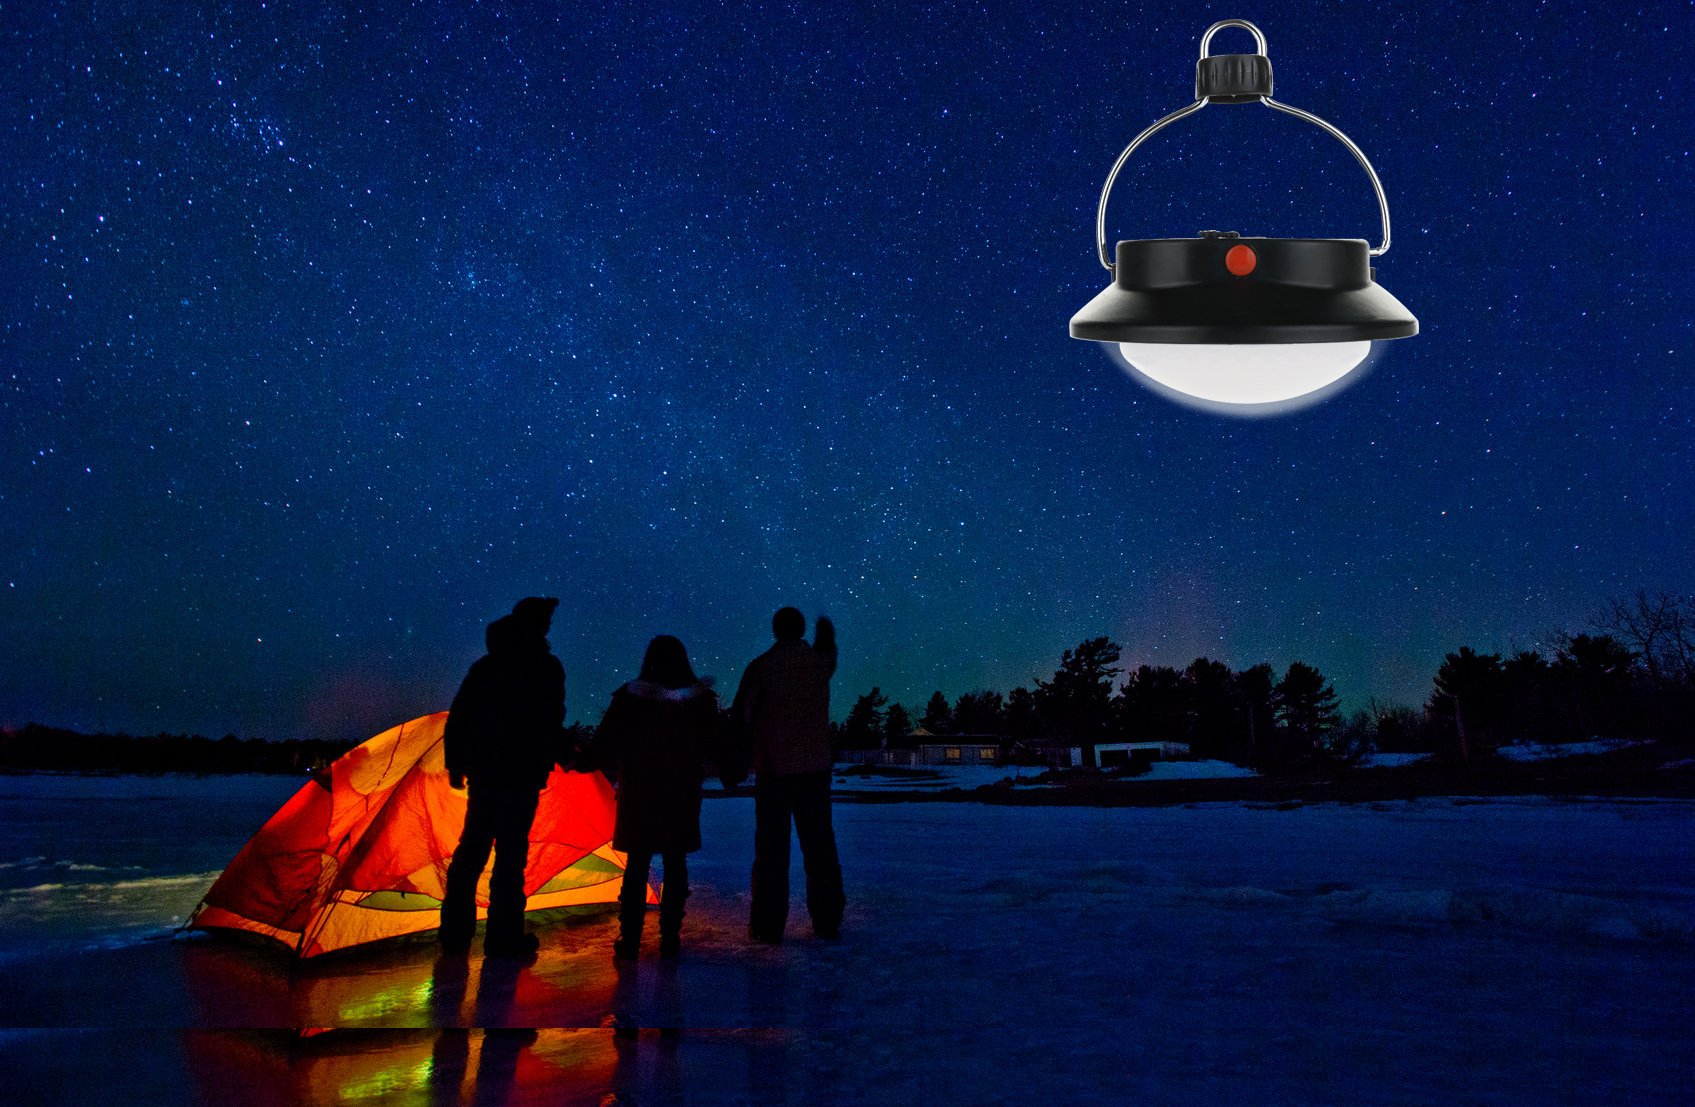 SUBOOS Ultra Bright Portable LED Tent Light - The 60 LED Camping Lantern - Great Lamp for Hiking, Camping, Patio…